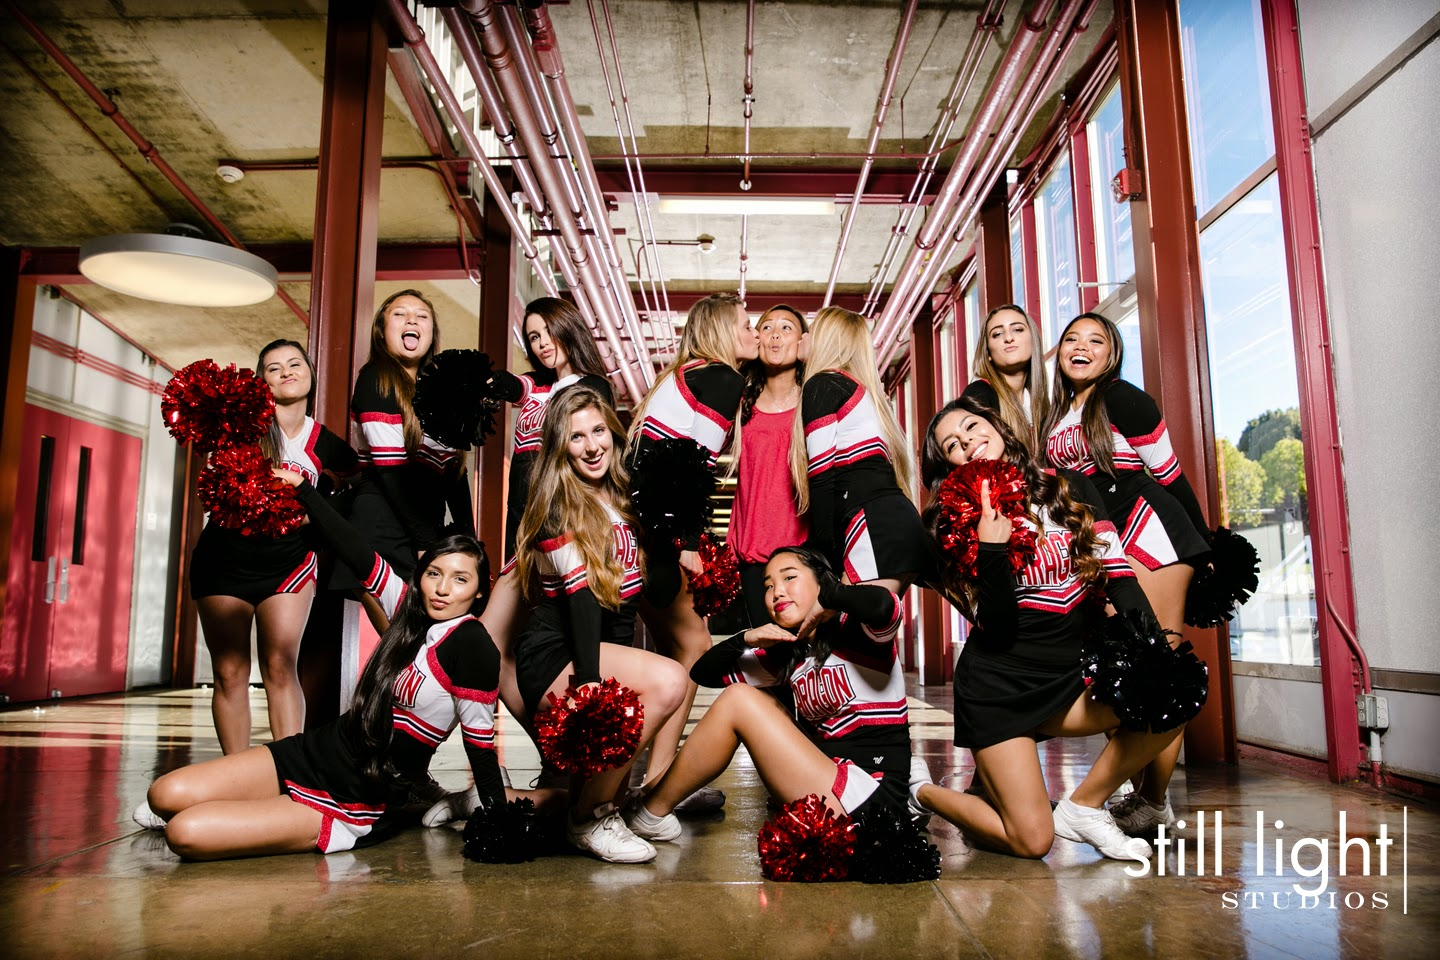 San Mateo Aragon High School Cheer Photo by Still Light Studios, School Sports and Senior Portraits Photography in Bay Area, cinematic, nature, cheerleaders